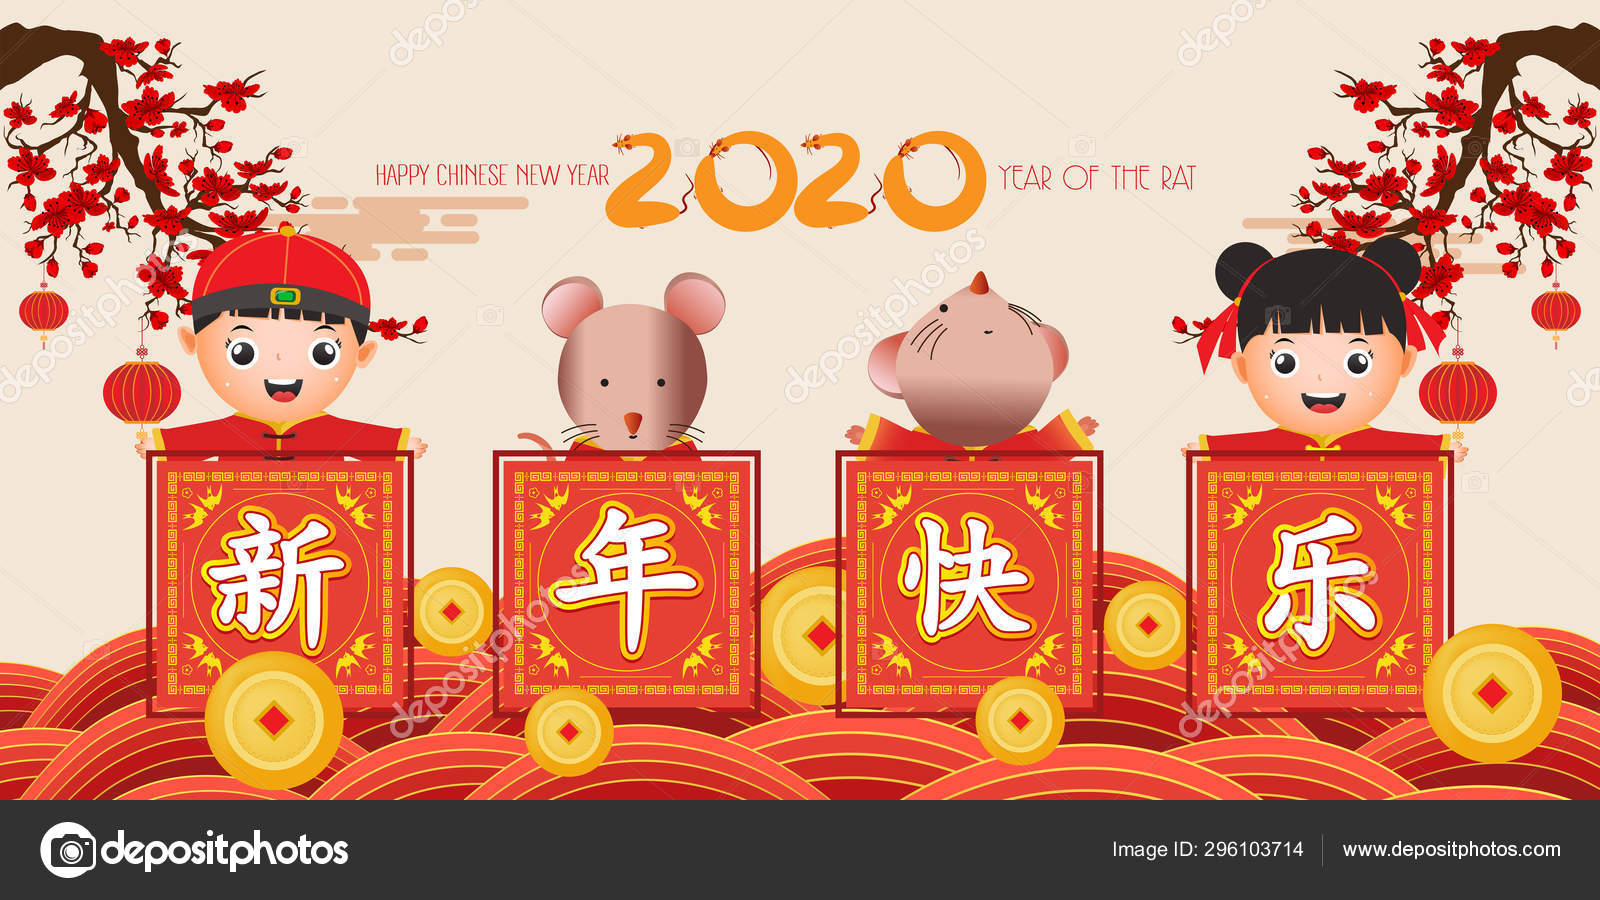 Happy New Year 2020 Chinese New Year Cute Boy And Girl Happy Smile The Year Of The Rat Translation Chinese New Year Stock Vector C Ngocdai86 296103714